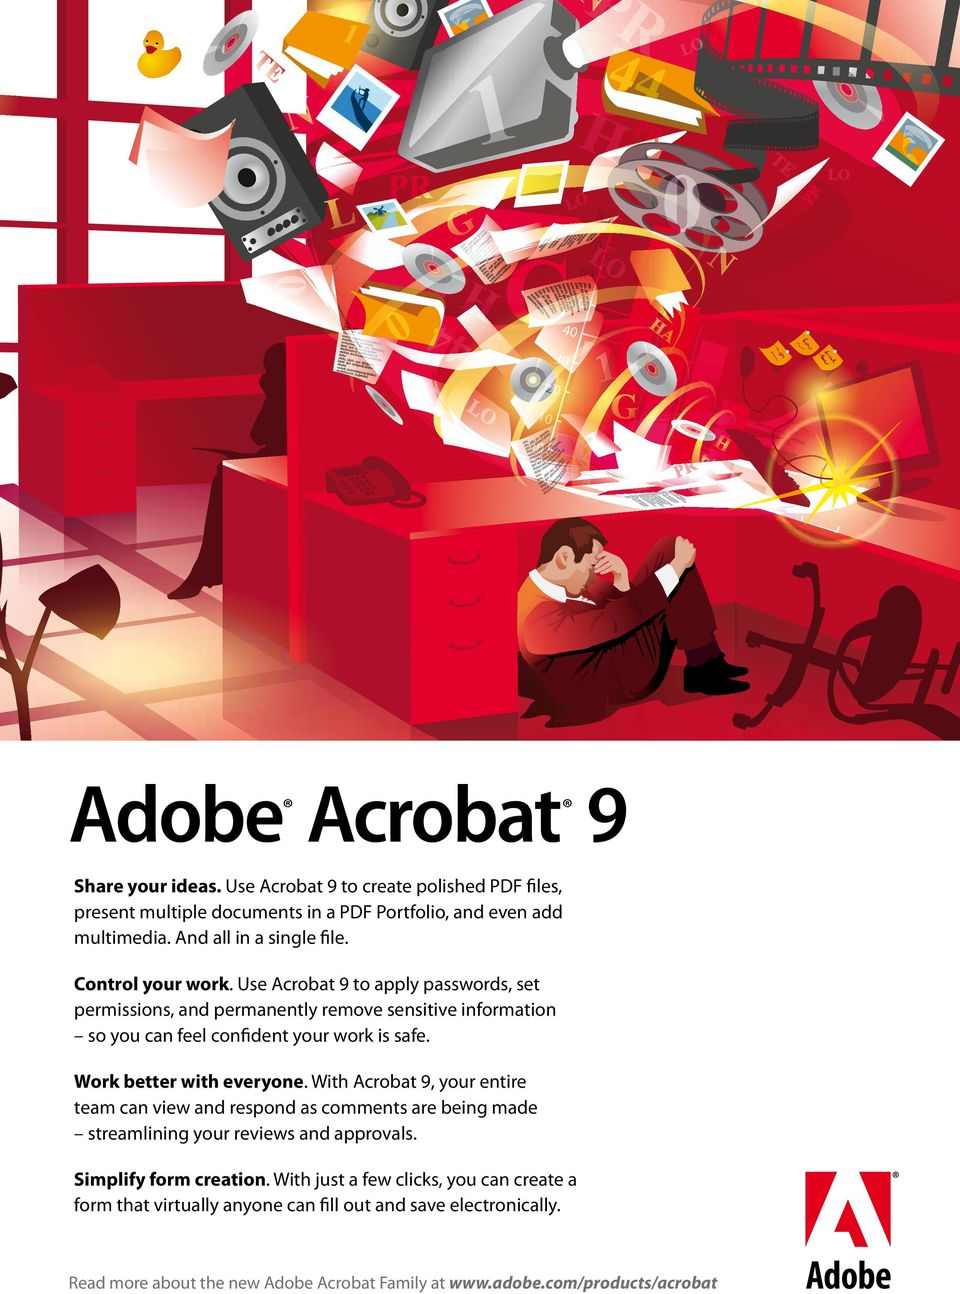 Use Acrobat 9 to apply passwords, set permissions, and permanently remove sensitive information so you can feel confident your work is safe. Work better with everyone.